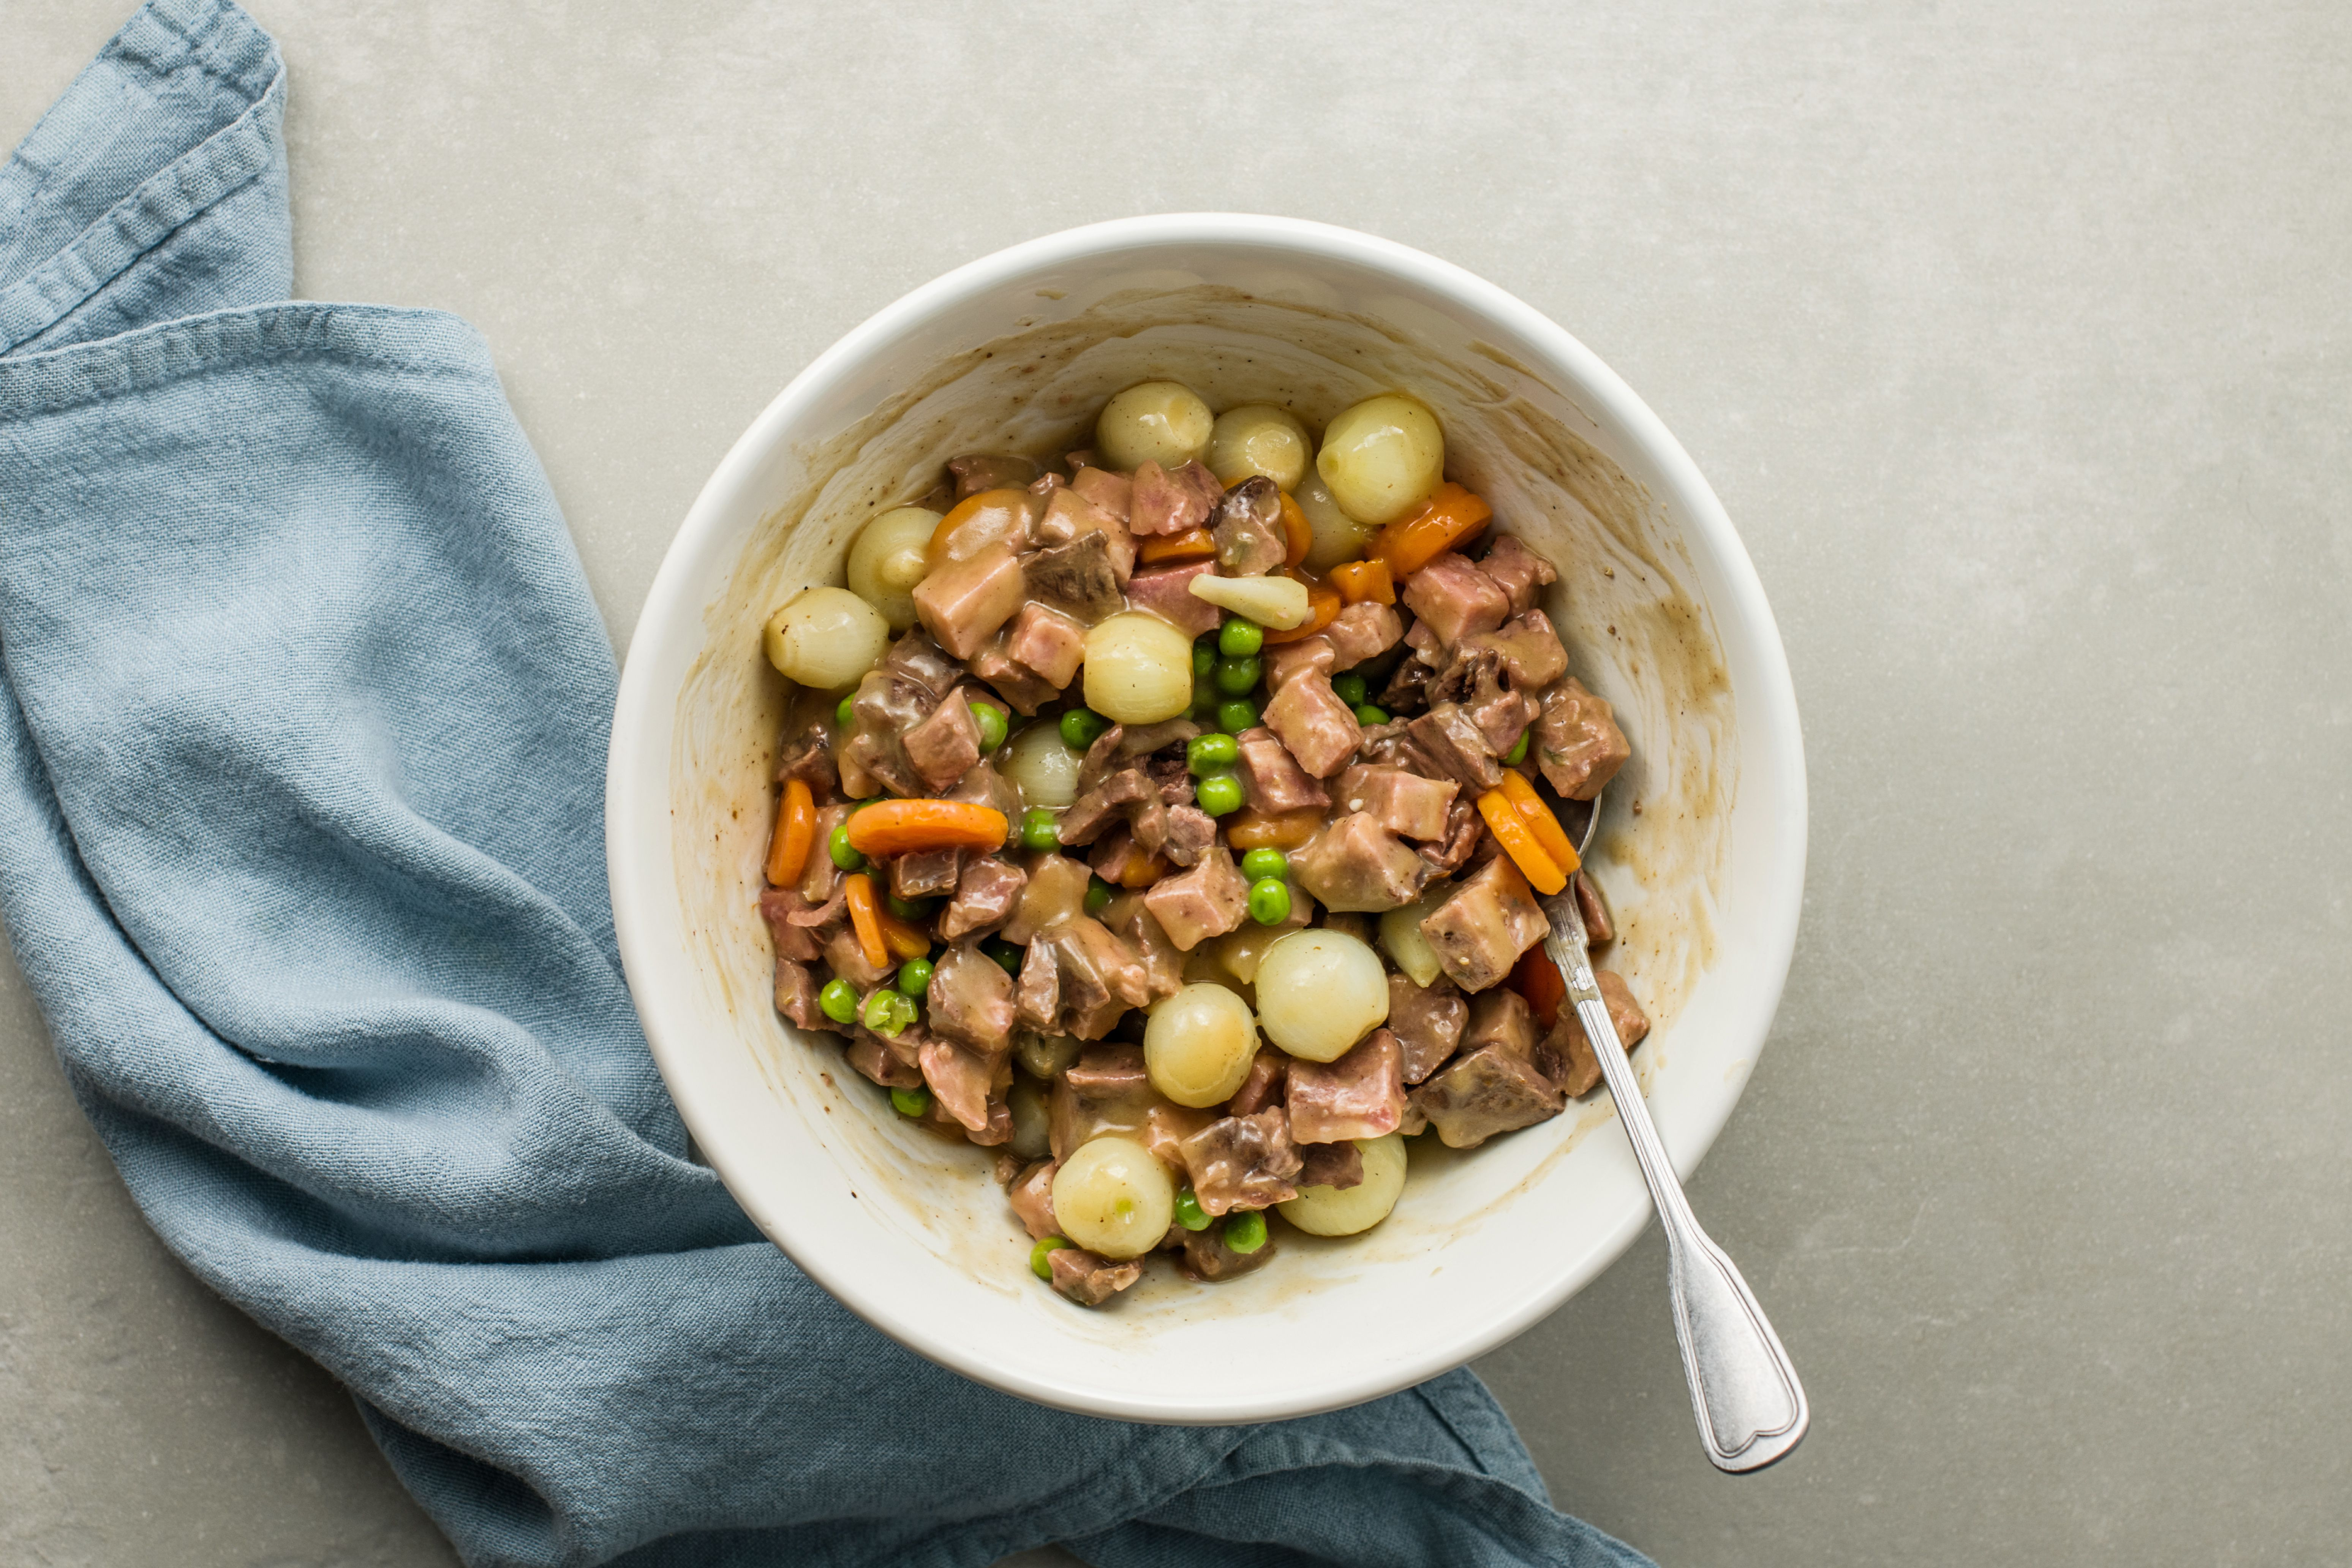 Mixed vegetables with leftover beef